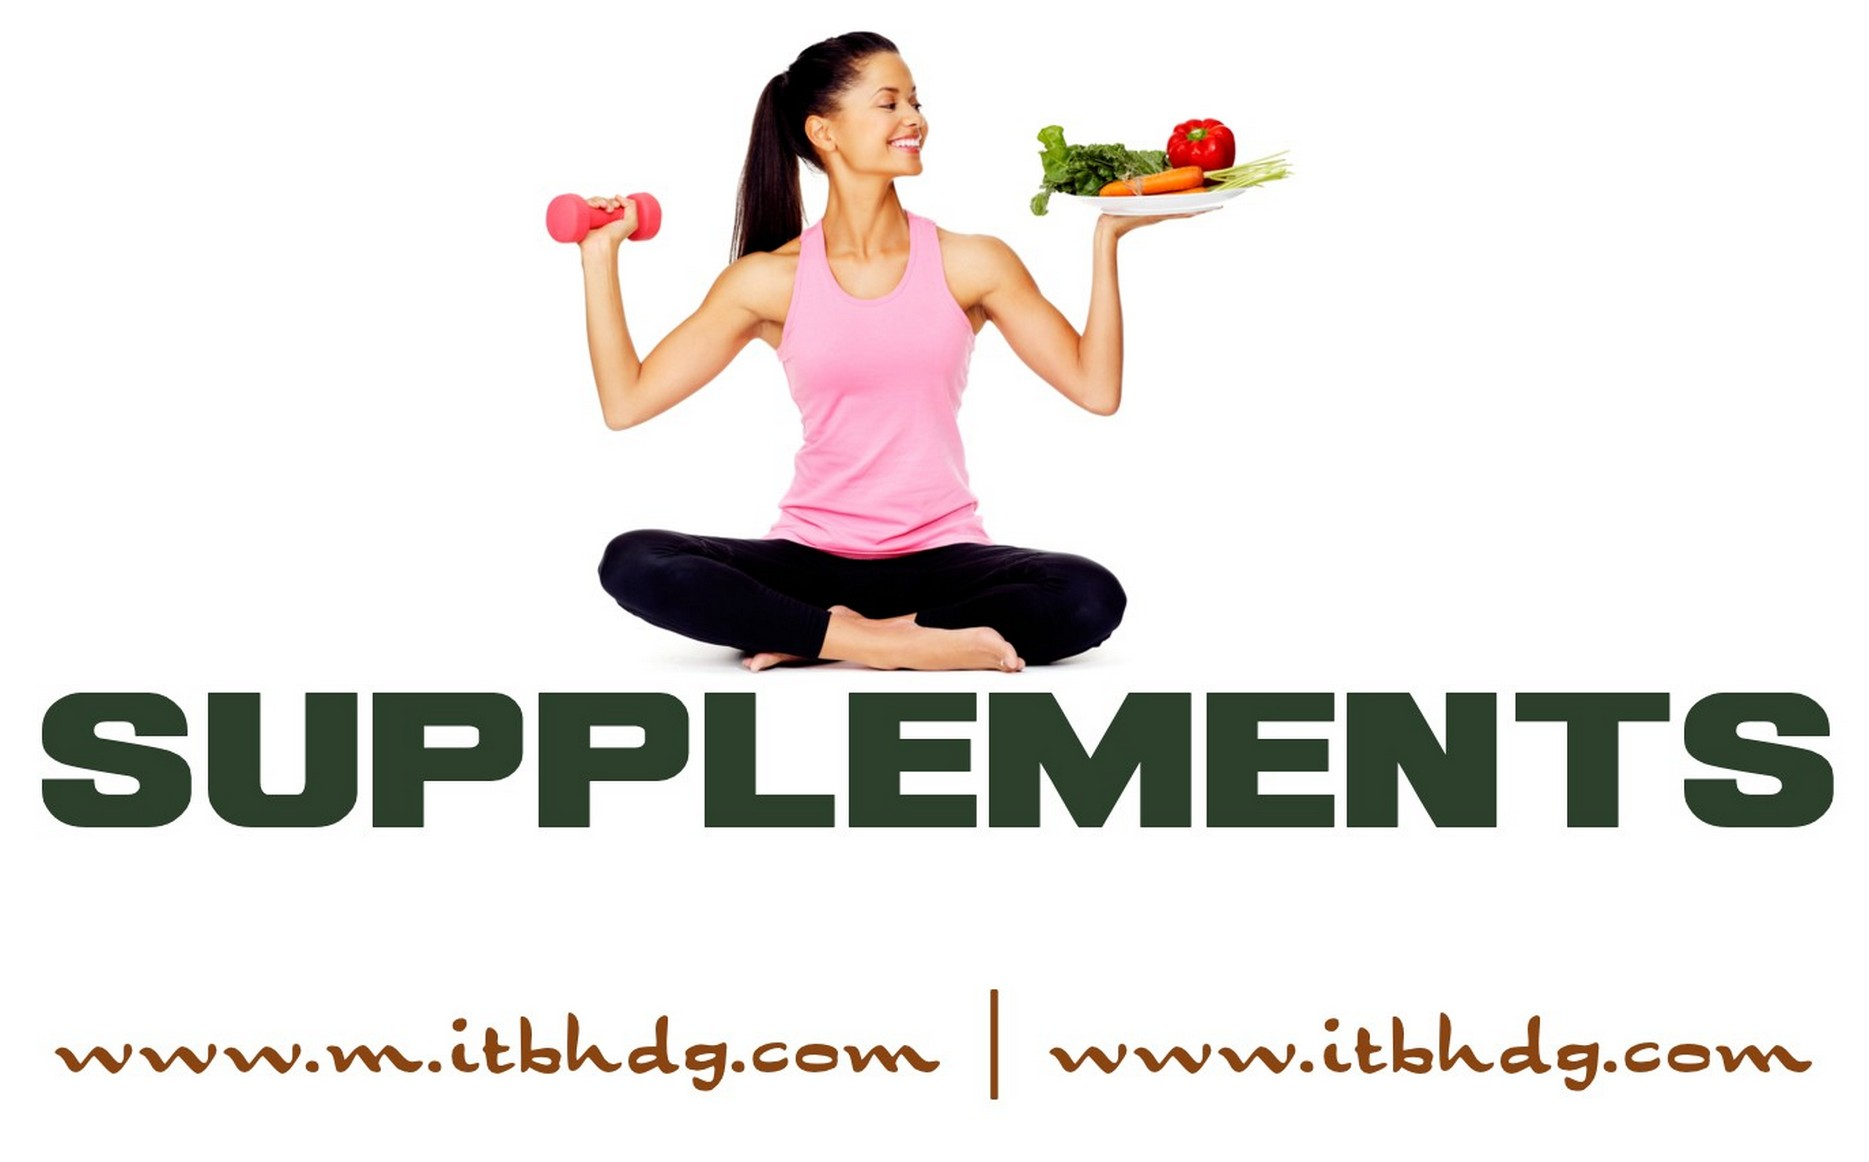 Sell your Dietary Supplements and Ingredients : Vitamins | Essential fatty acids (EFAs)| Branched-chain amino acids (BCAA)| Nutraceutical | Superfood | Fish Oil | Flaxseed | Omega-3 Fatty Acids | Weight Loss Conjugated Linoleic Acid (CLA) | Coenzyme Q10 (CoQ10) | Alpha-Lipoic Acid | Green Coffee